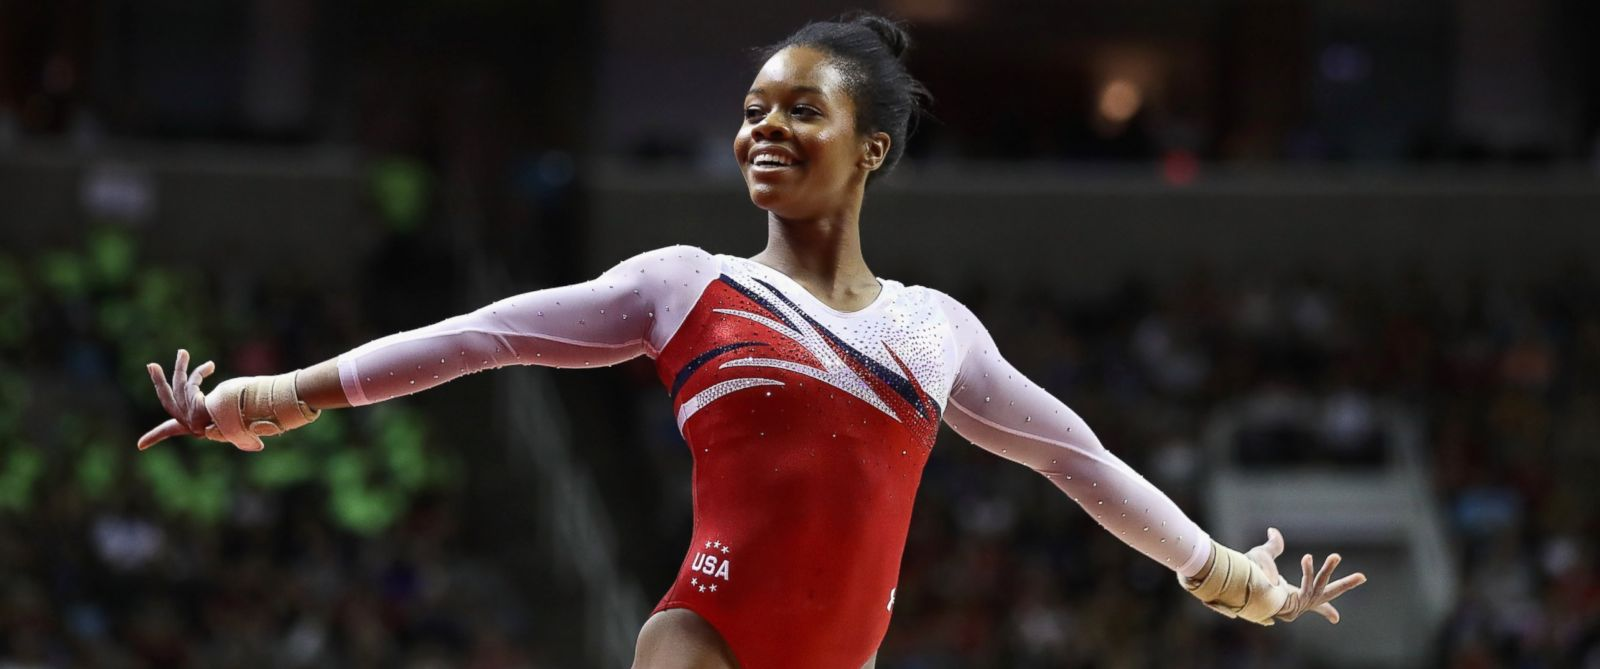 PHOTO: Gabrielle Douglas competes in the floor exercise during Day 2 of the 2016 U.S. Womens Gymnastics Olympic Trials at SAP Center, July 10, 2016 in San Jose, California.